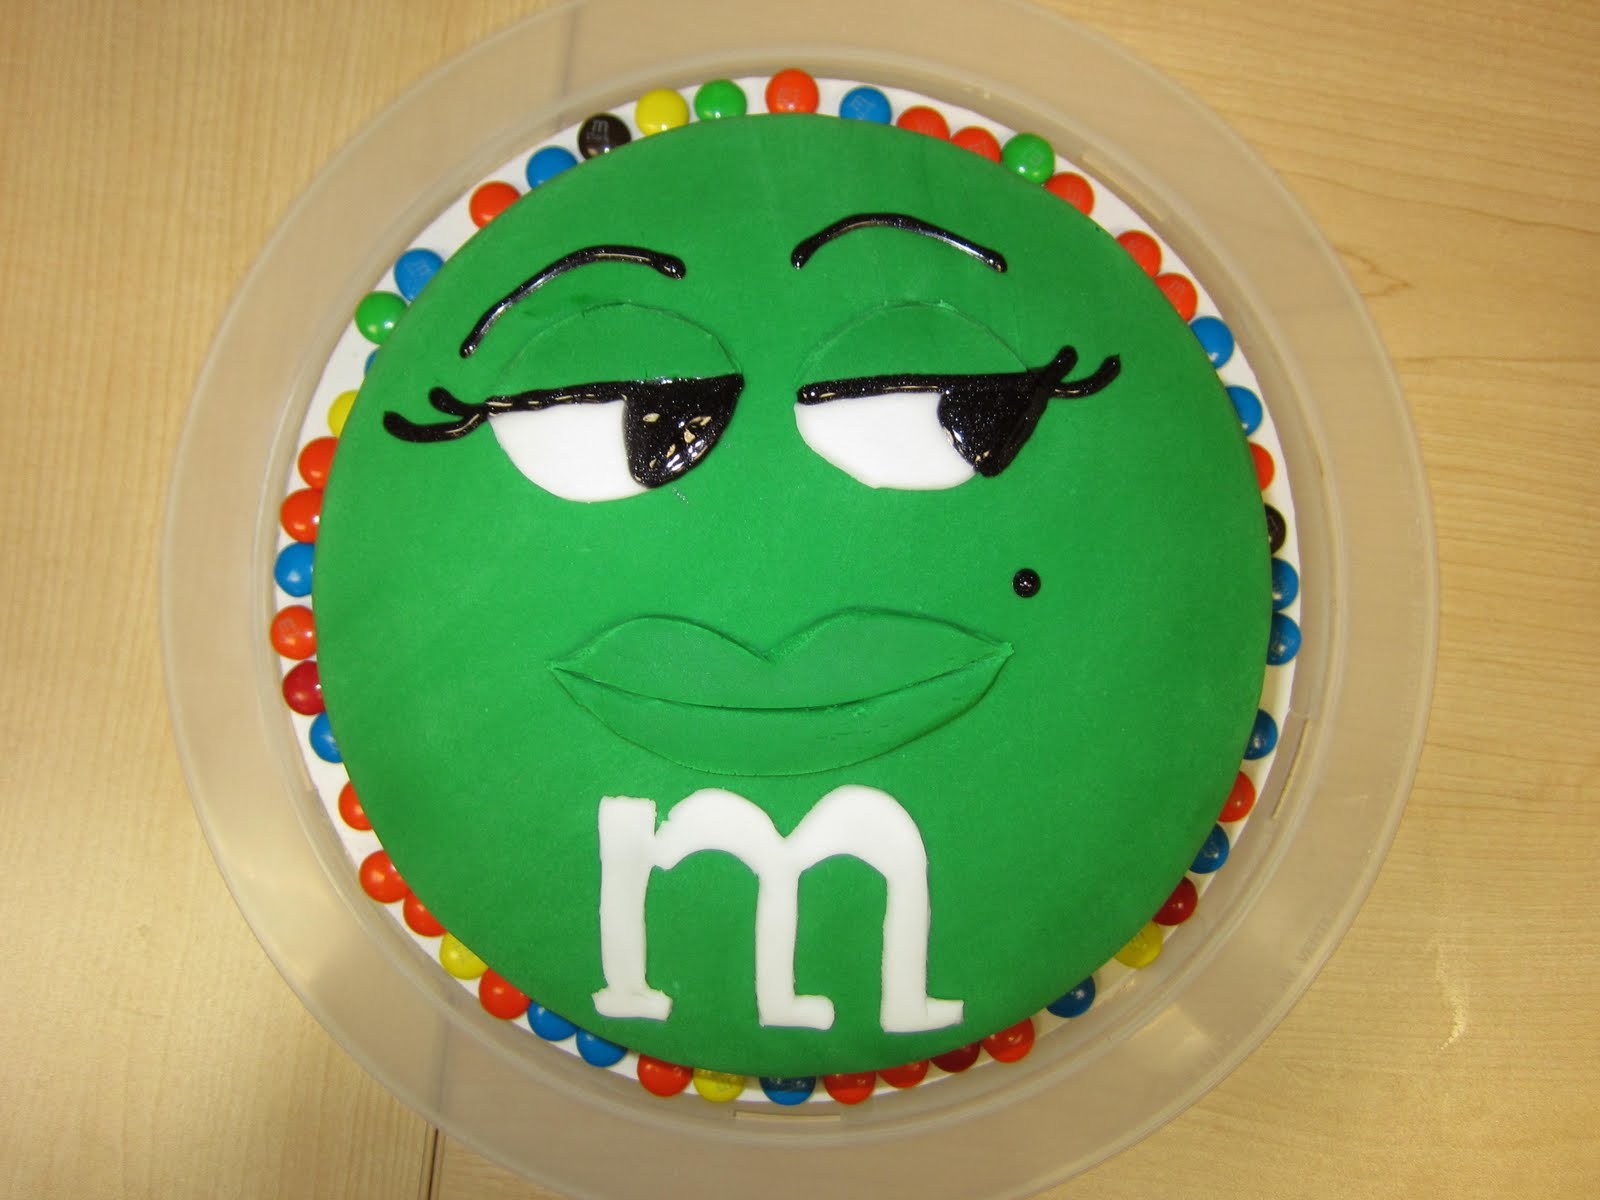 SABtabulous Cakes Green MM Cake